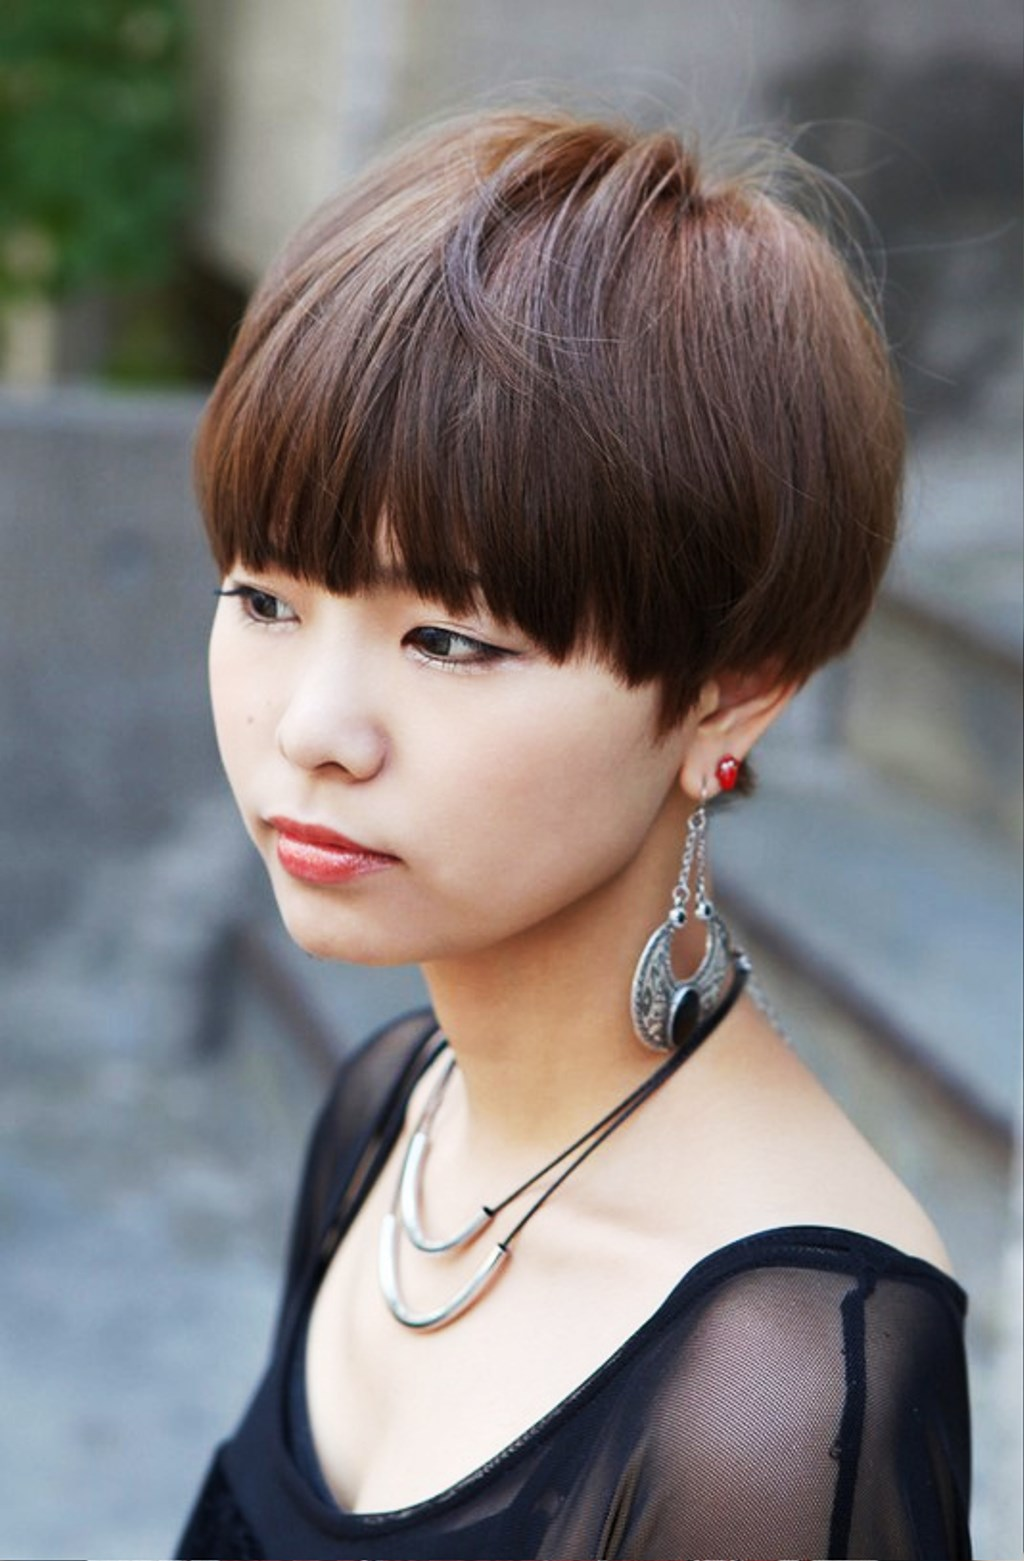 Pictures Of Cute Short Japanese Girls Hairstyle With Blunt Bangs